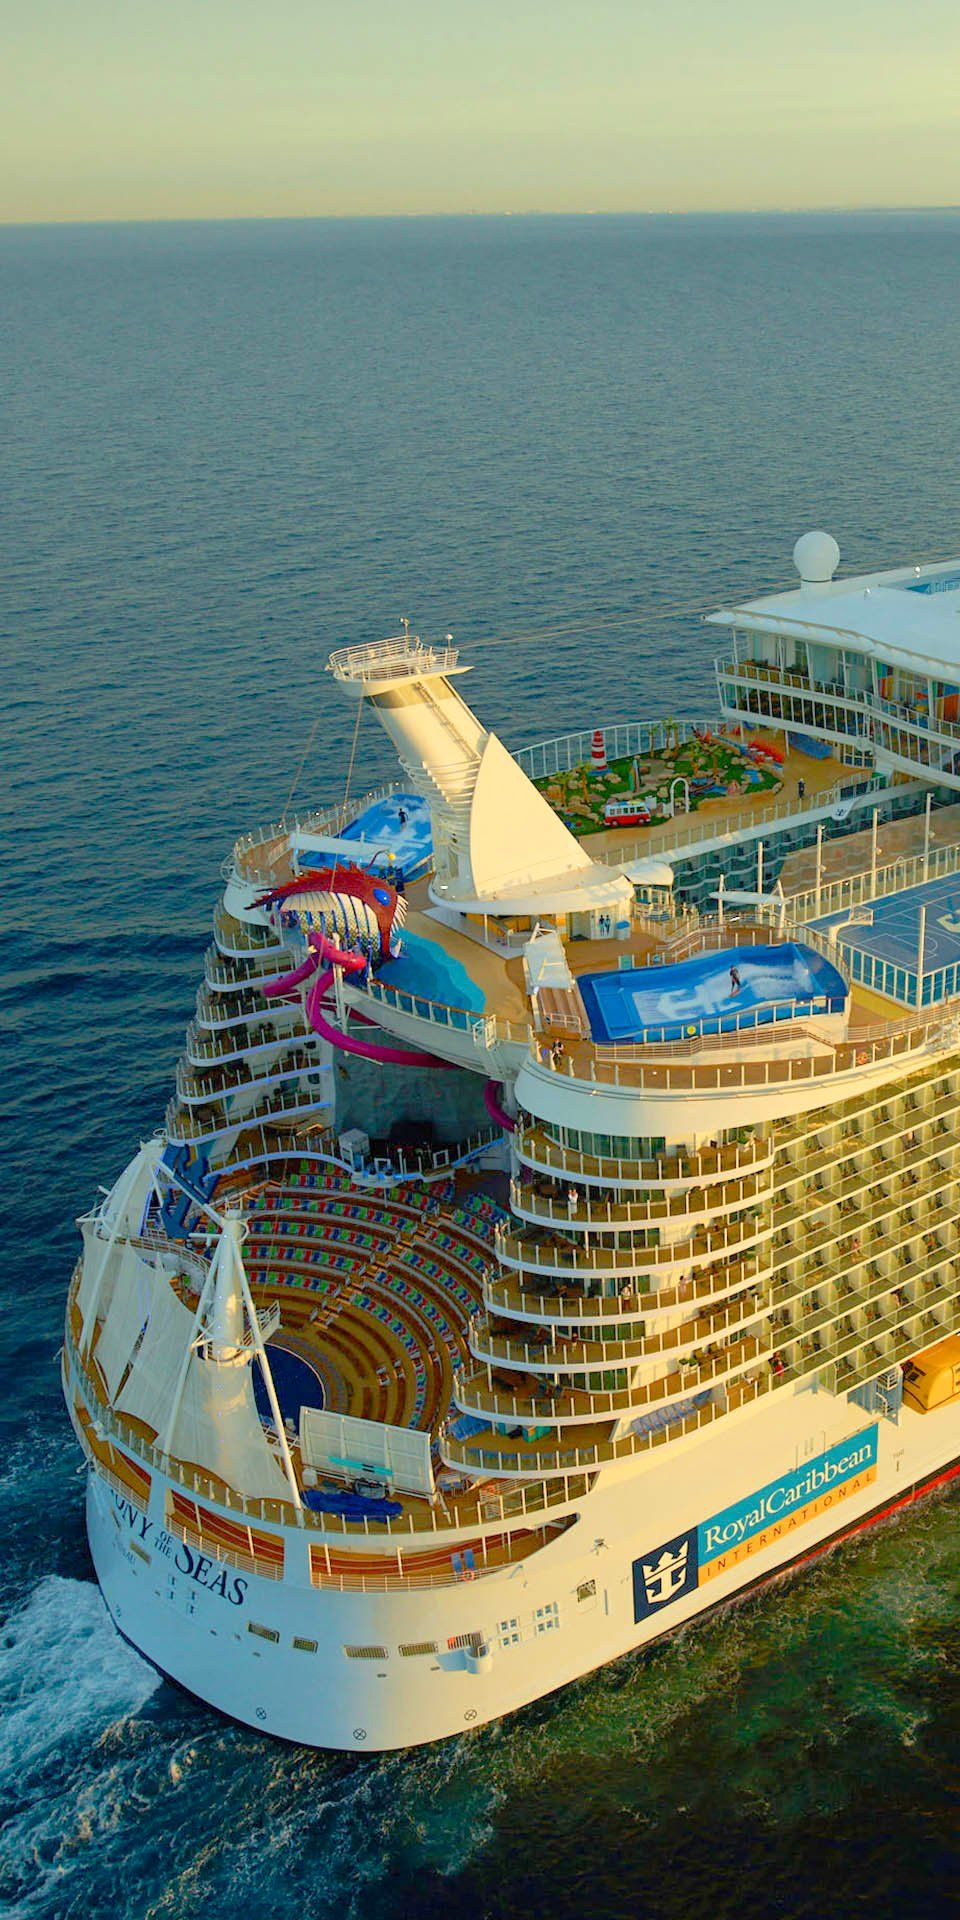 Symphony Of The Seas With A 10 Story Slide Surf Simulators A Zip Line And Much More You Ll Be Hopi Royal Caribbean Cruise Cruise Travel Best Cruise Ships